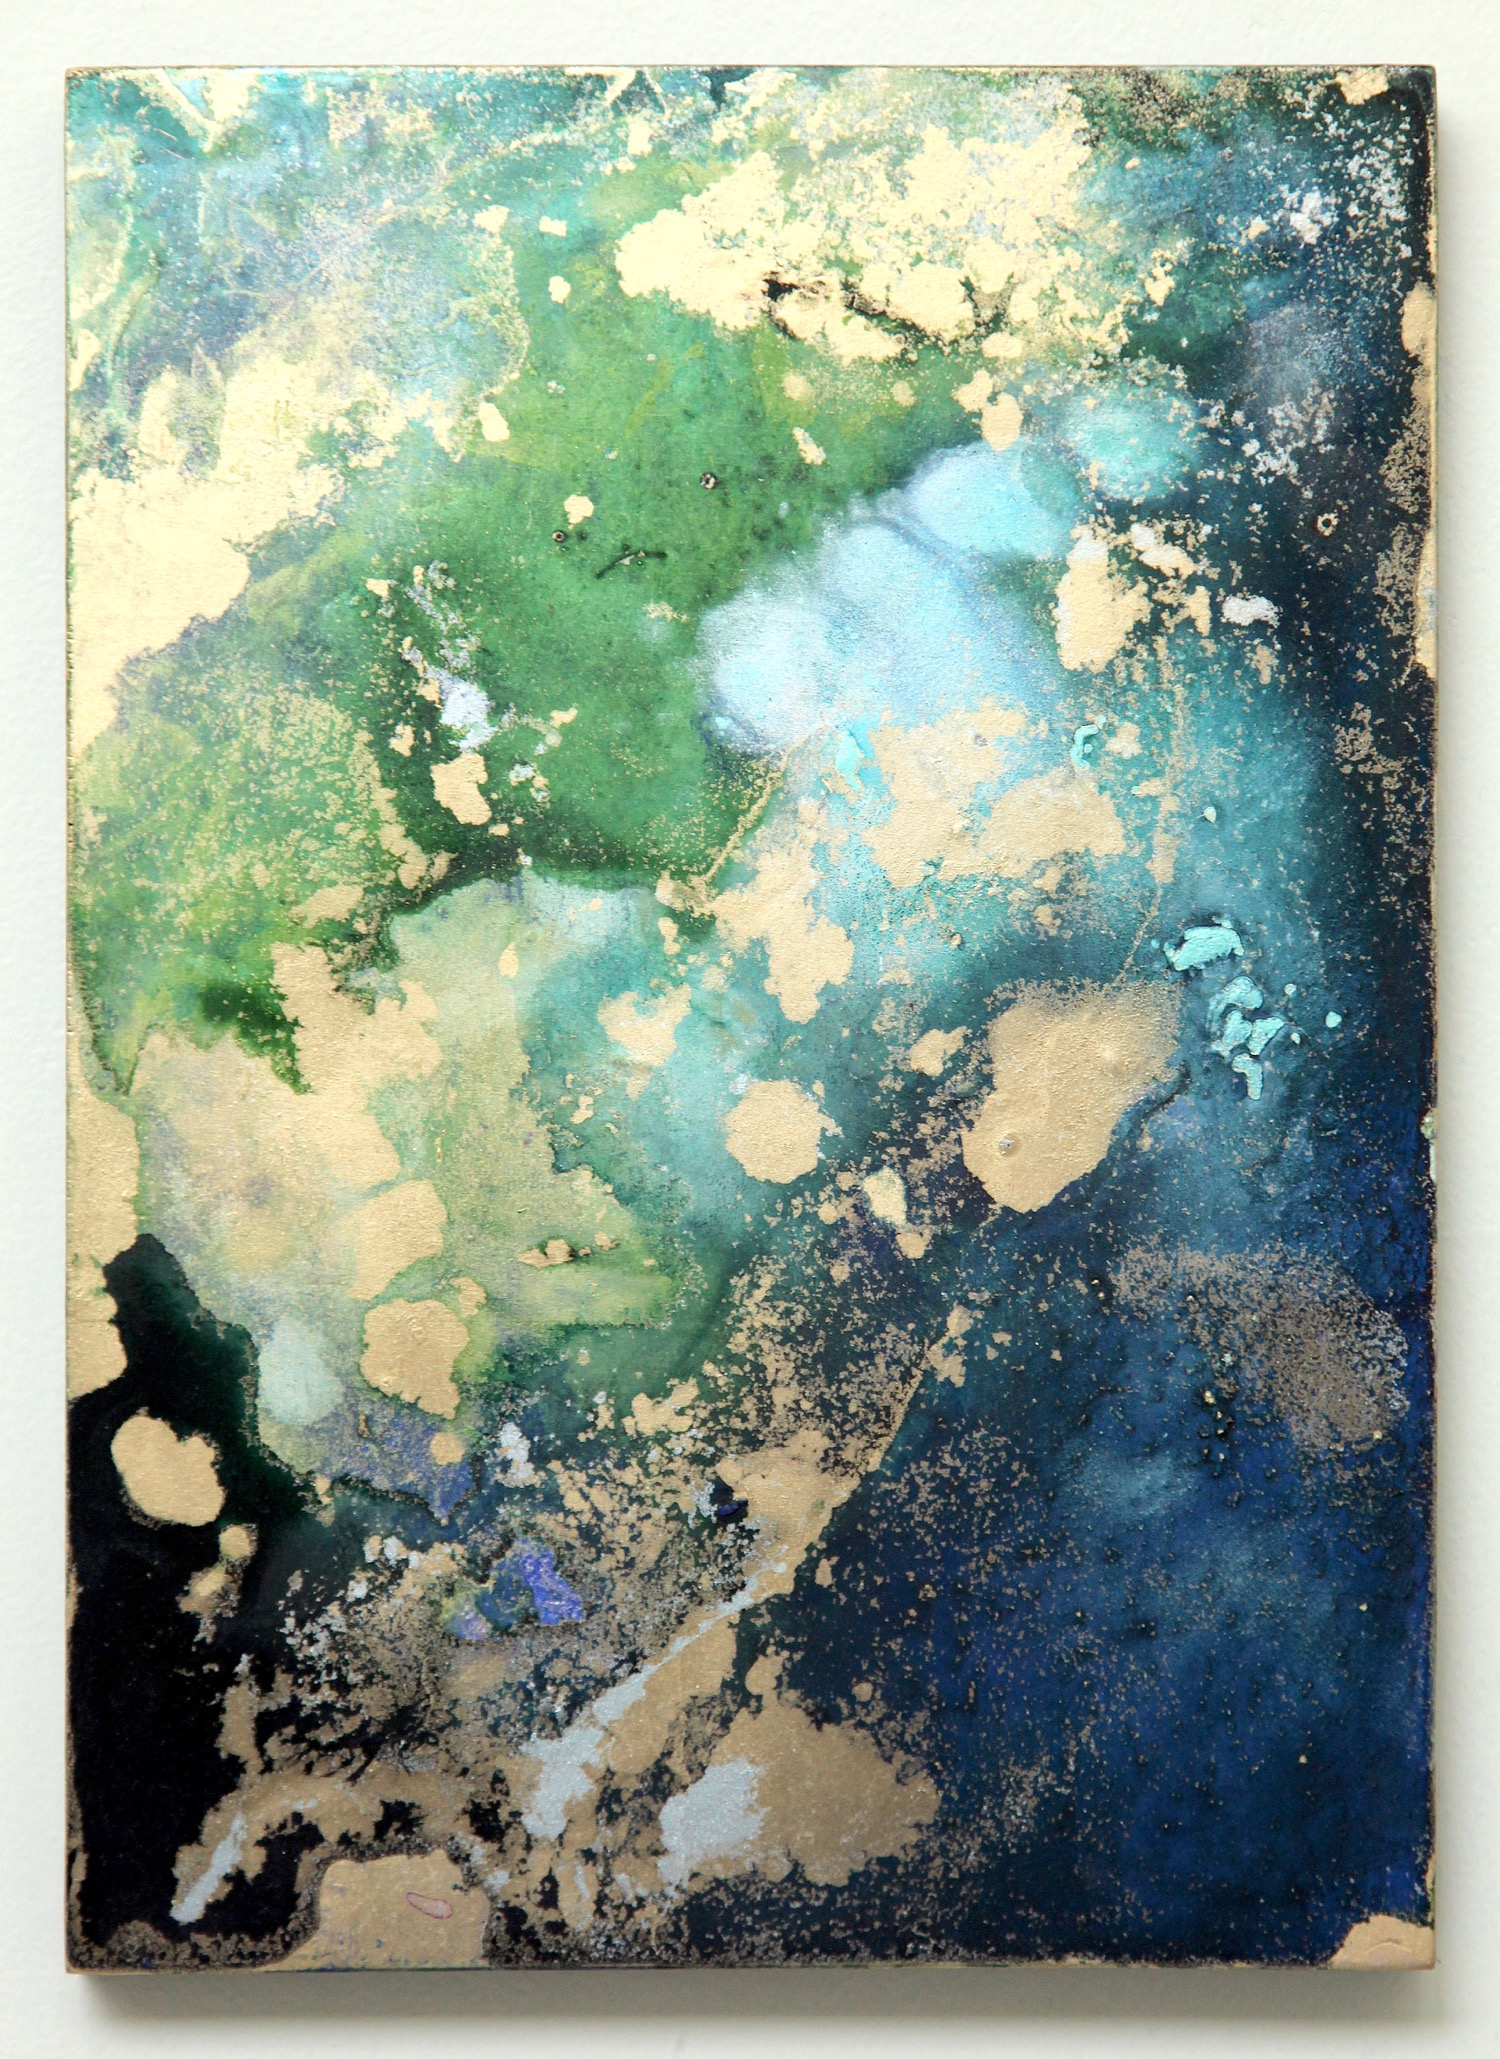 T14 ( Green Land)  2015  Acrylic and metal powder on board  H33.3cm x W24.1cm